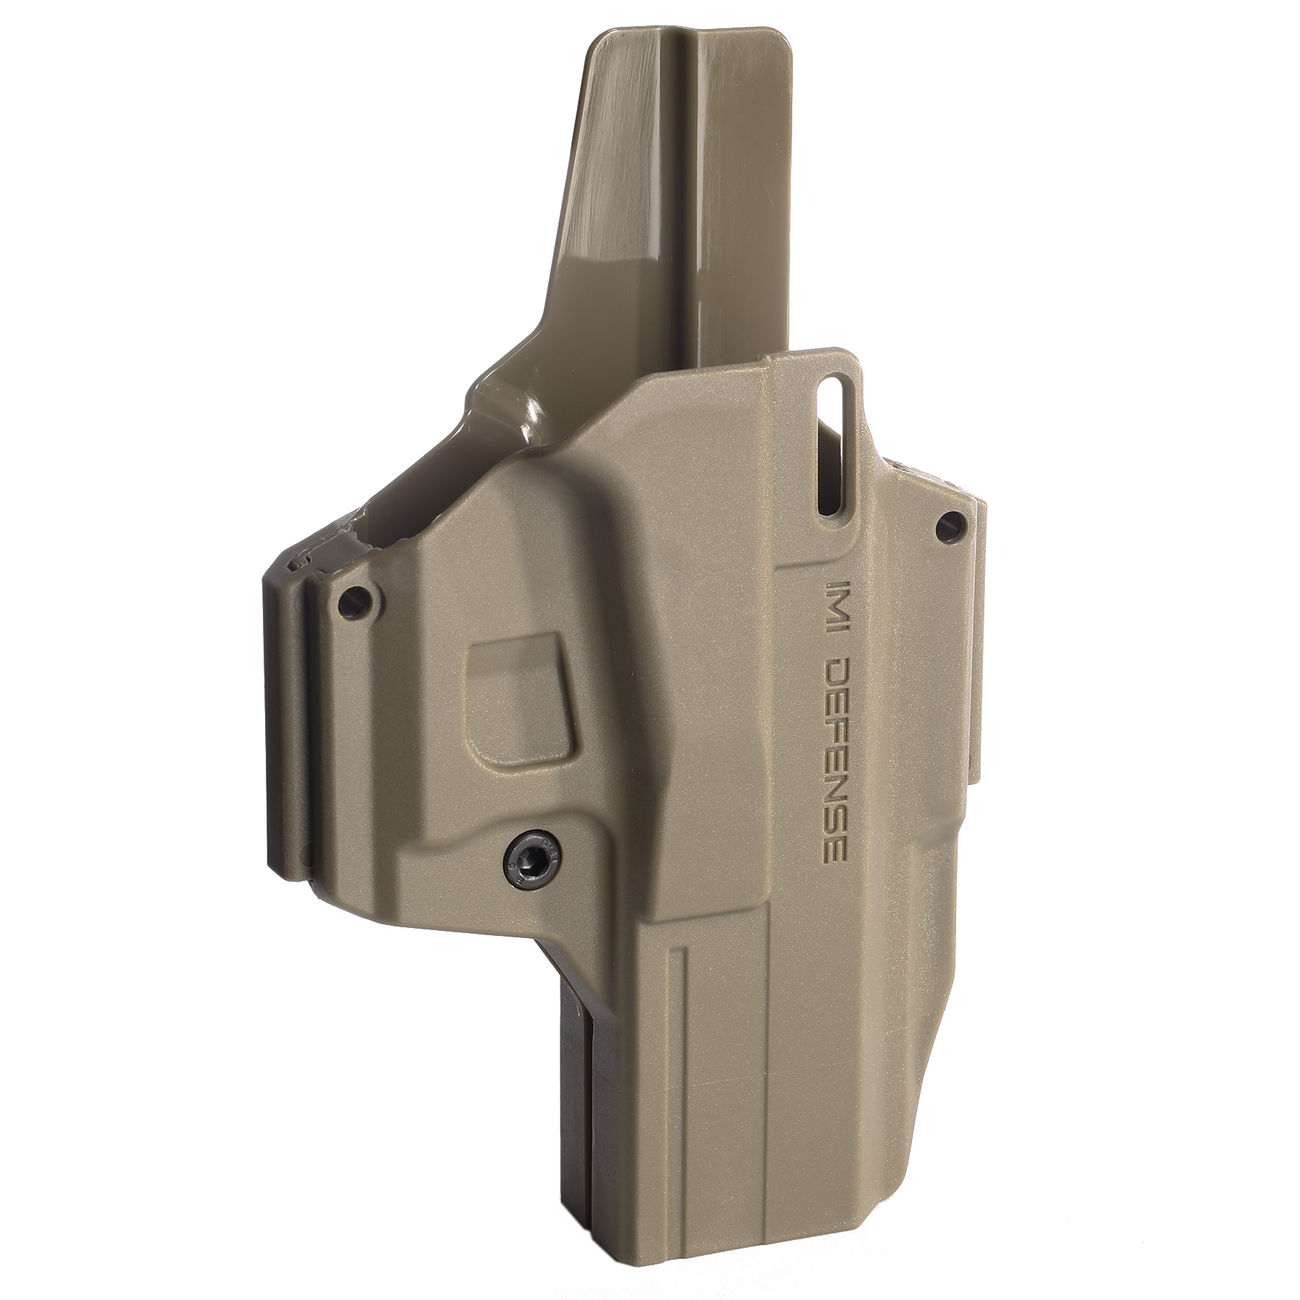 IMI Defense MORF X3 Polymer Holster IWB / OWB / Paddle für Glock 17 Rechts / Links Tan 2